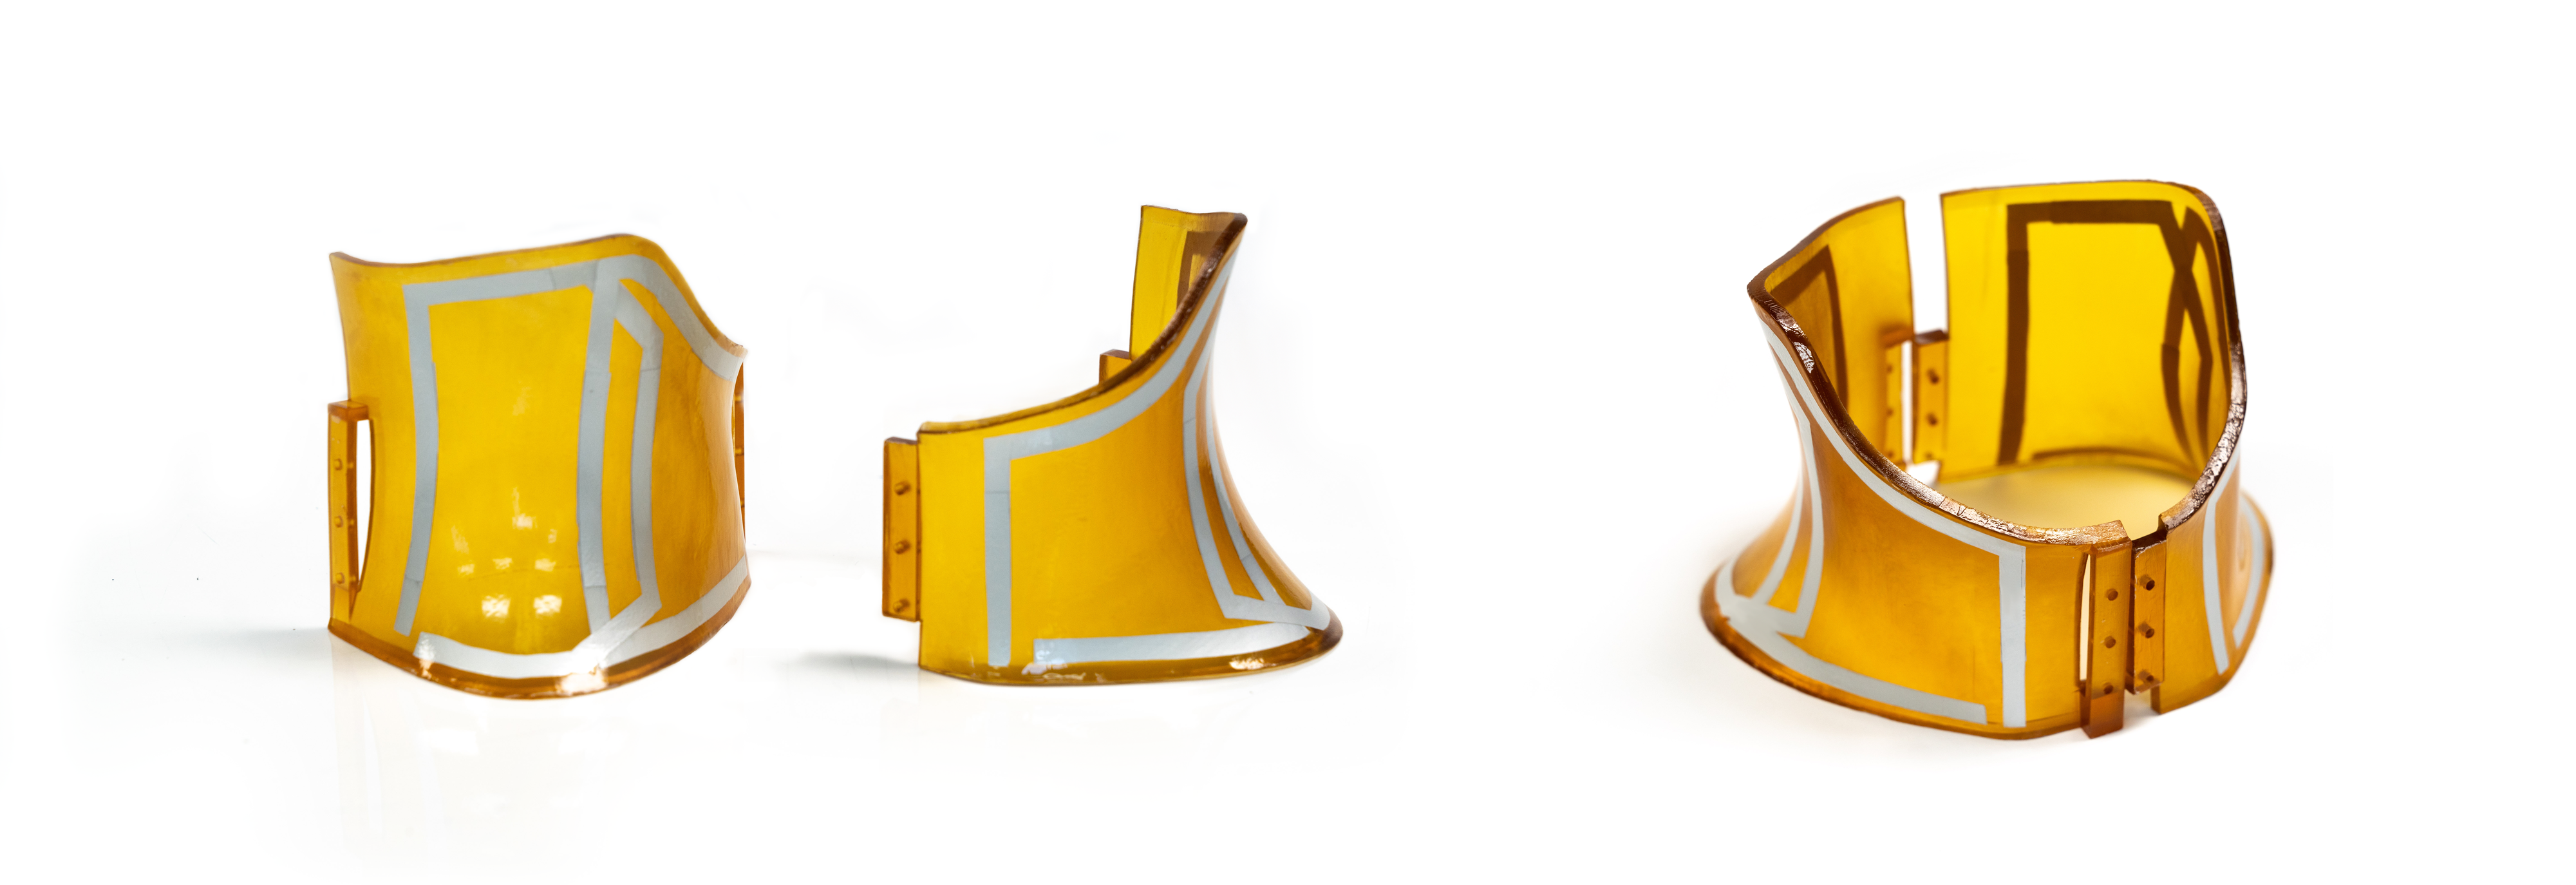 Patient-specific surface coils attached to custom-fit cervical collar